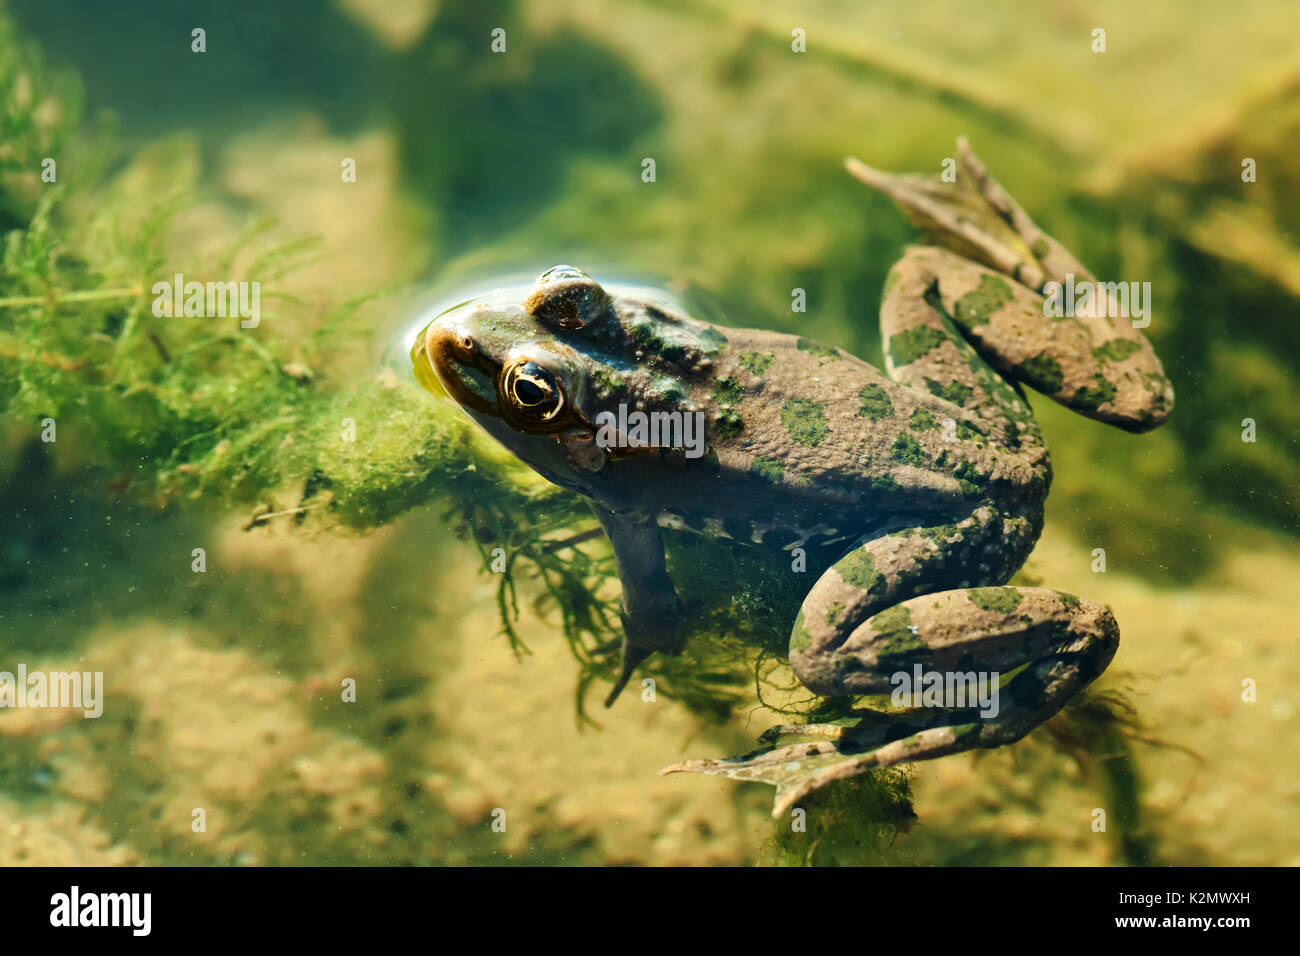 Swimming green frog Marsh natural habitat, brown camouflage amphibian Pelophylax ridibundus. Up view, selective focus, river floral background - Stock Image